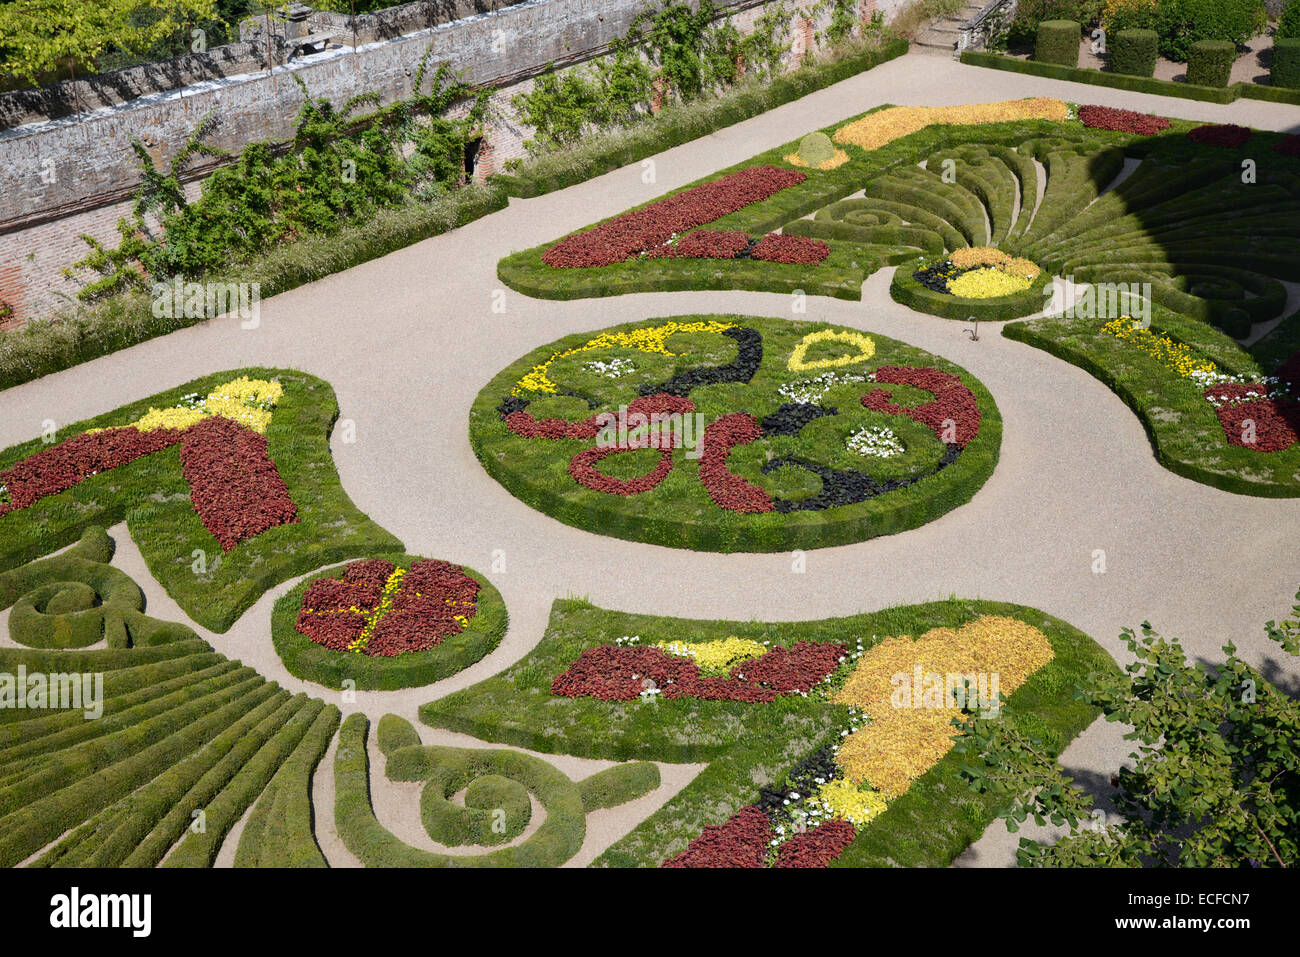 Formal French Garden Or Topiary Garden Of The Bishops Palace De La Berbie  Location Of The